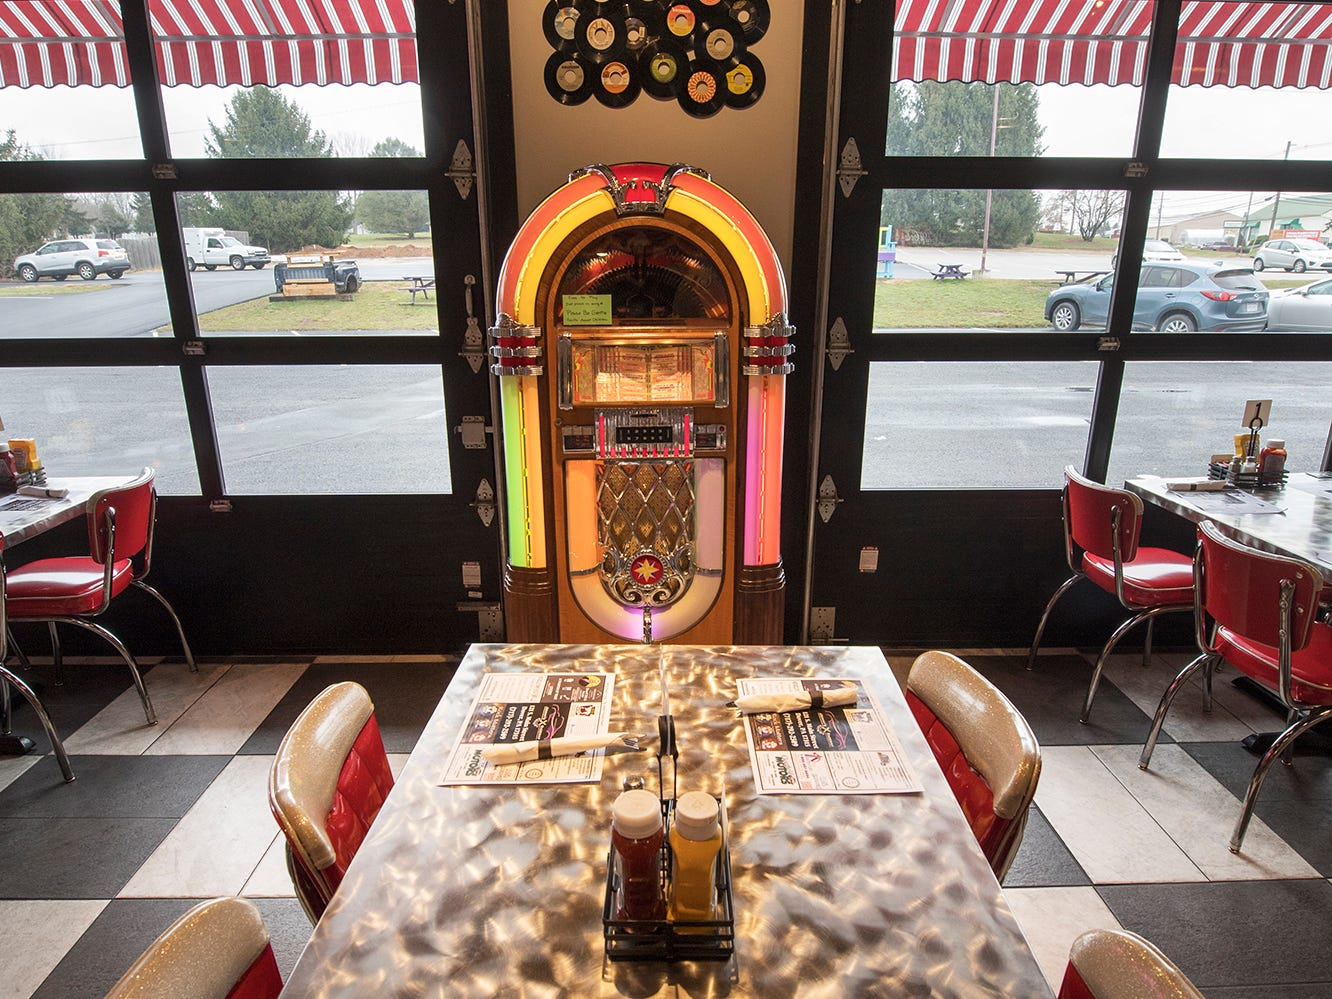 A  Jukebox plays 45s by request at Johnny's Raceway Eatery Tuesday January 8, 2019.